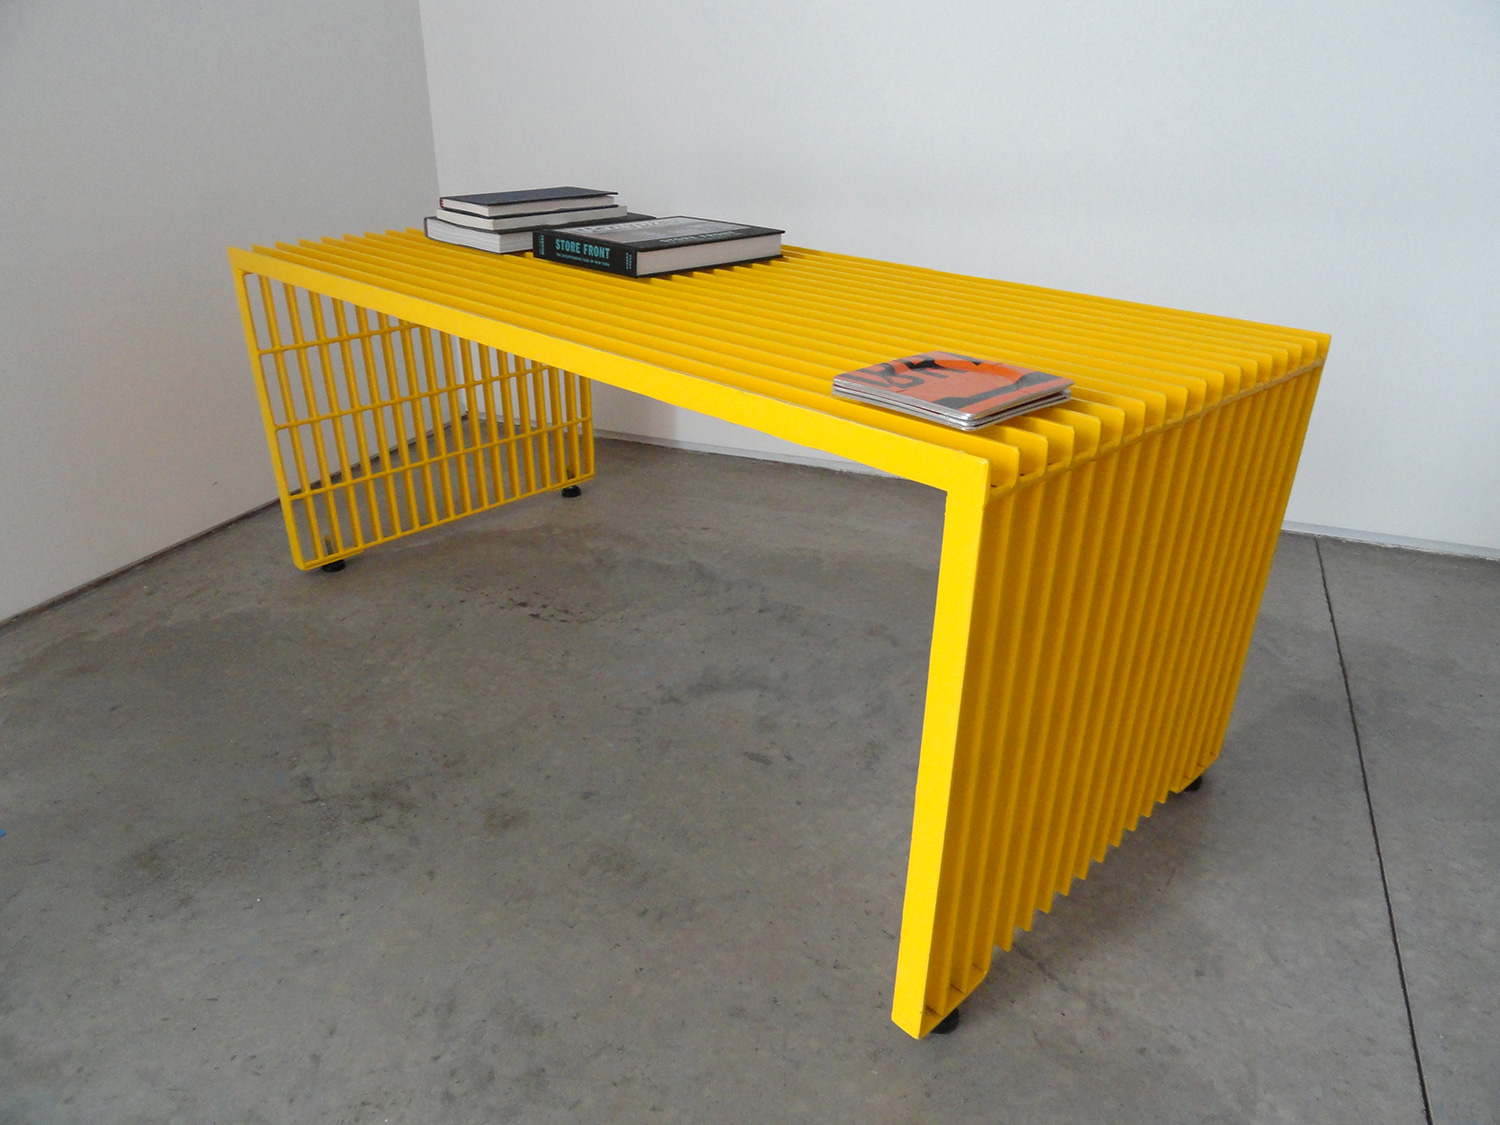 Coffee table, built from salvaged steel bar-grate.